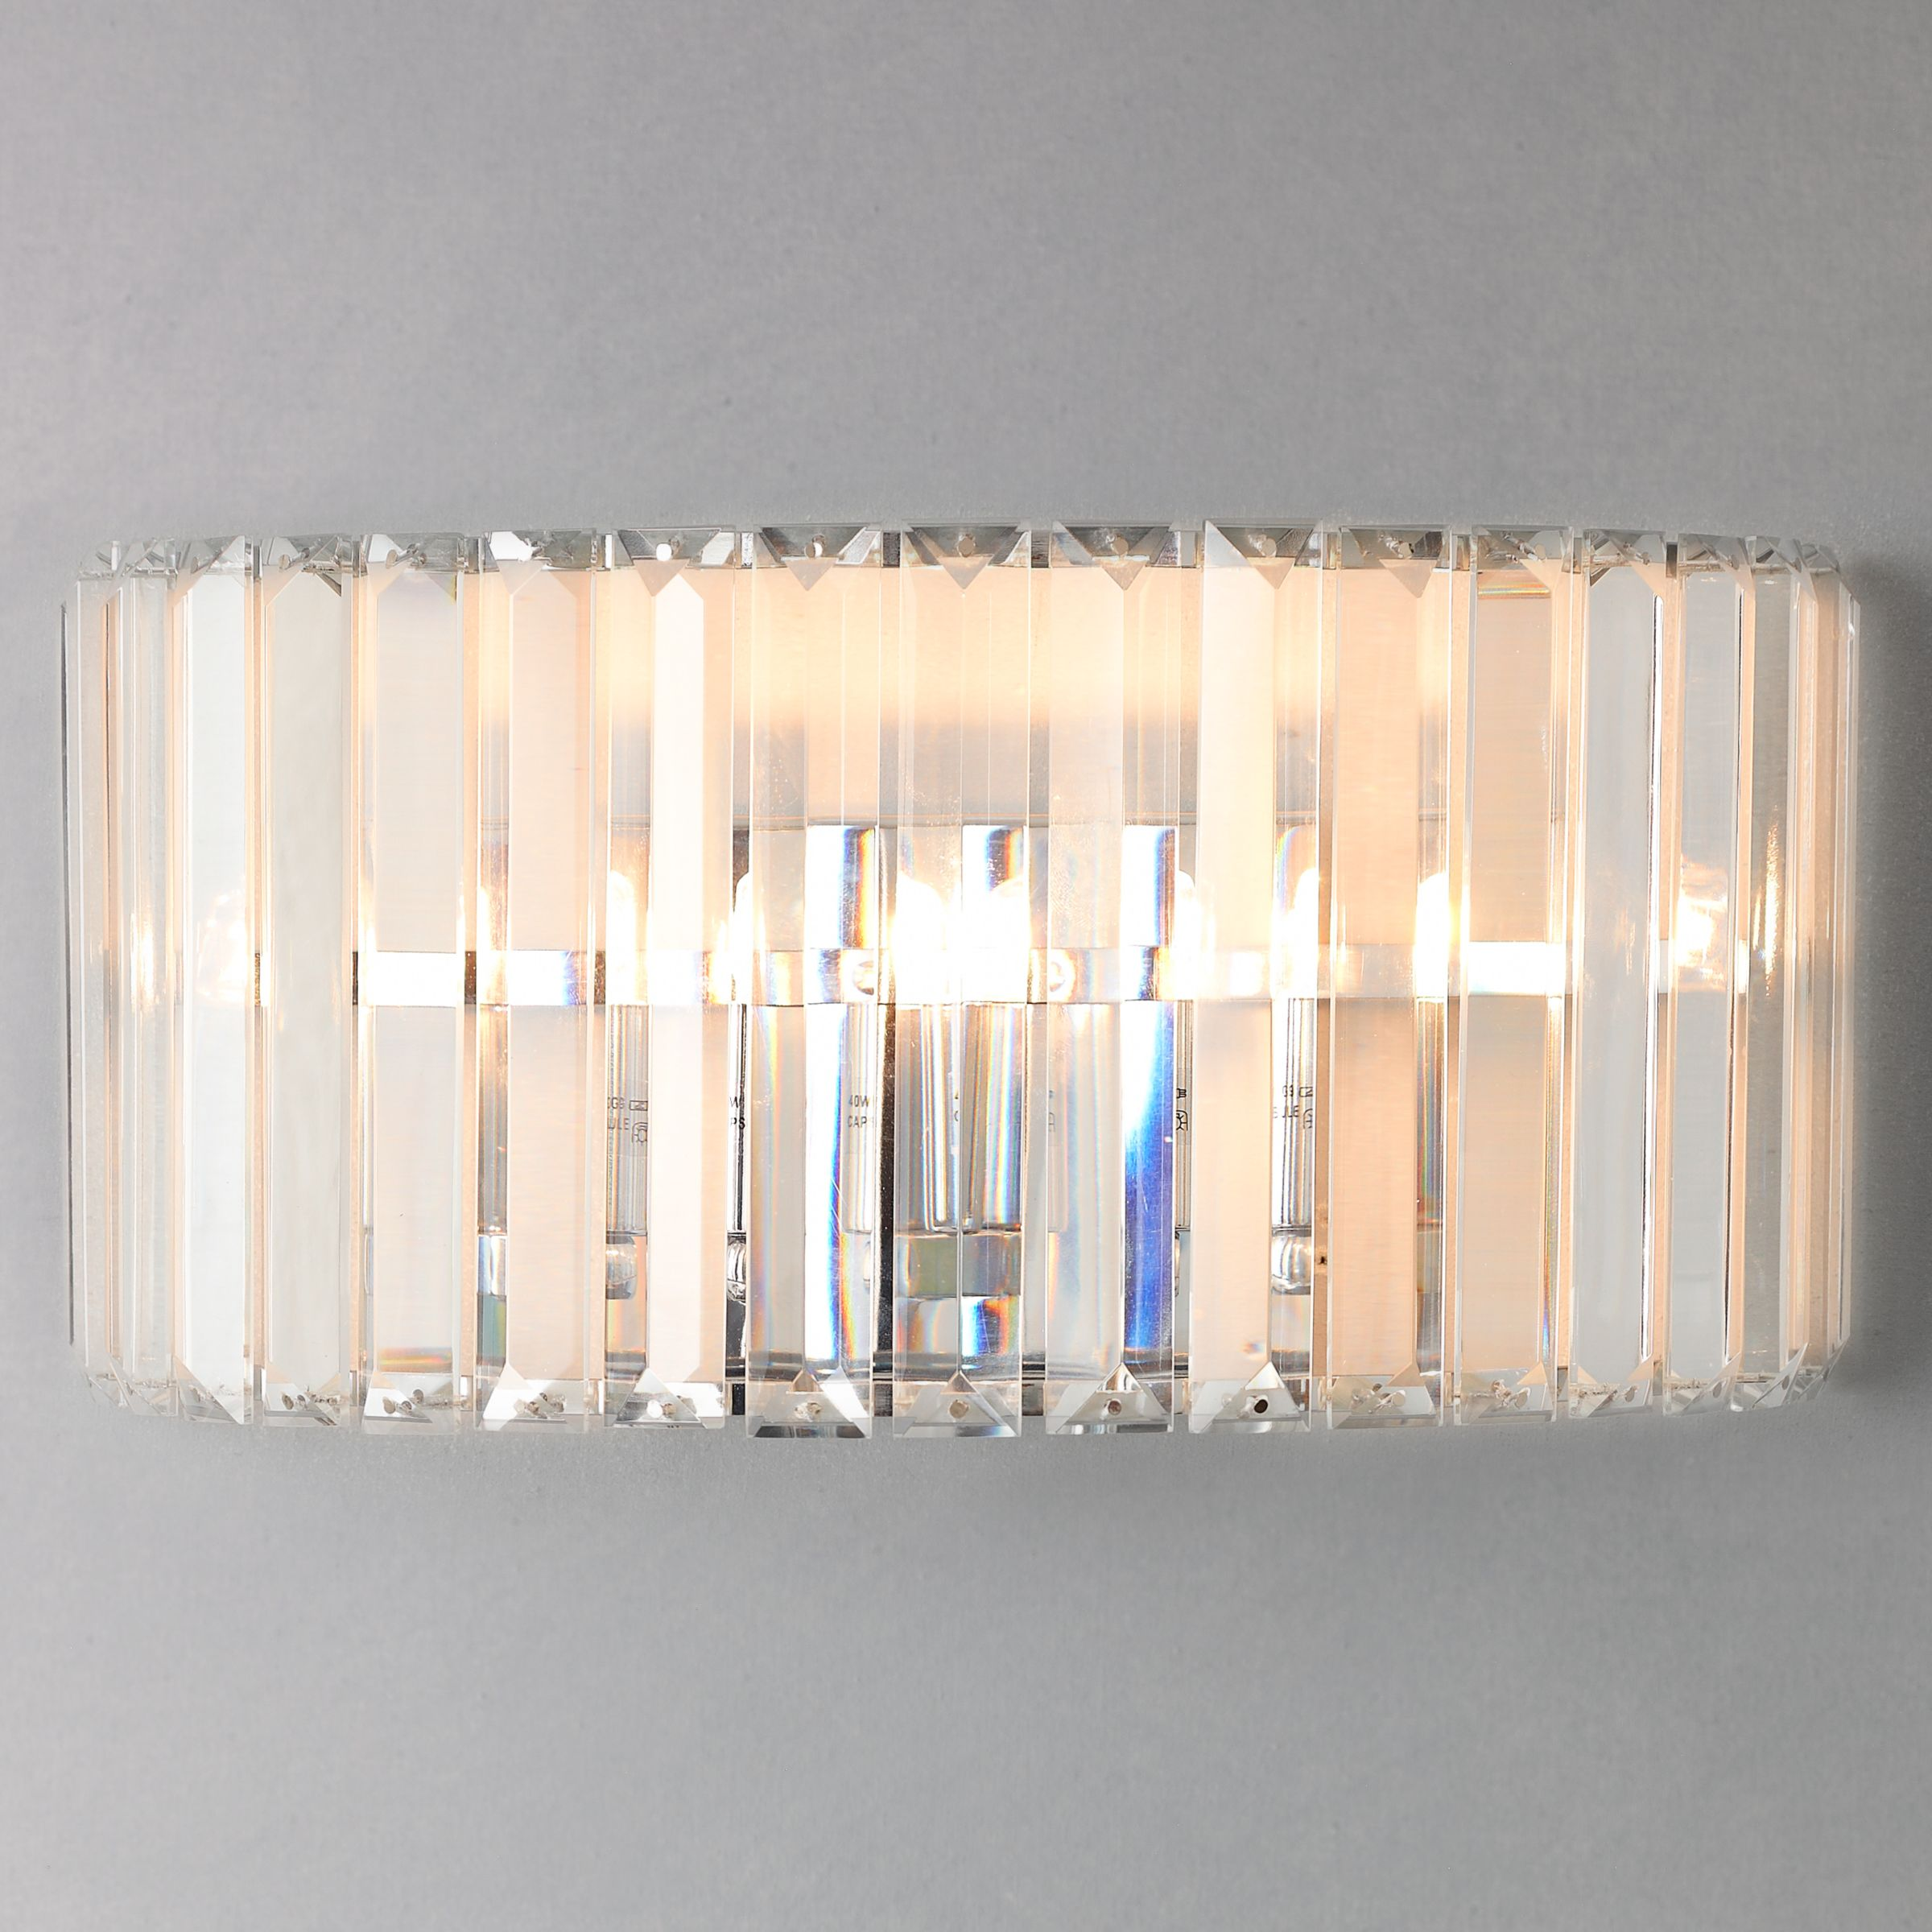 John Lewis Wall Lights Glass : Buy John Lewis Frieda Wall Light, Large John Lewis